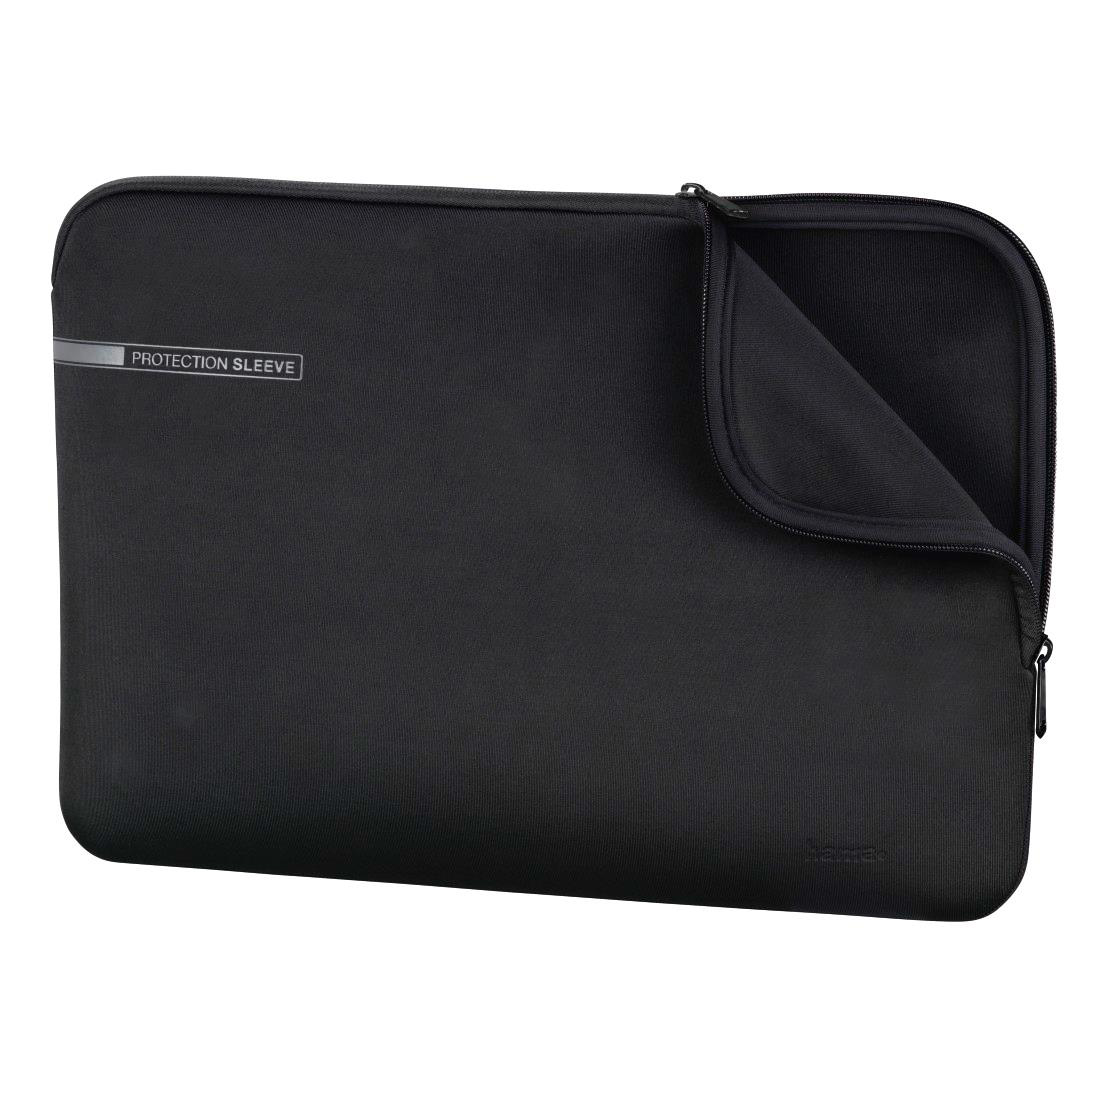 Image for Hama 15.6inch Notebook Sleeve Neoprene Black Ref 00101546